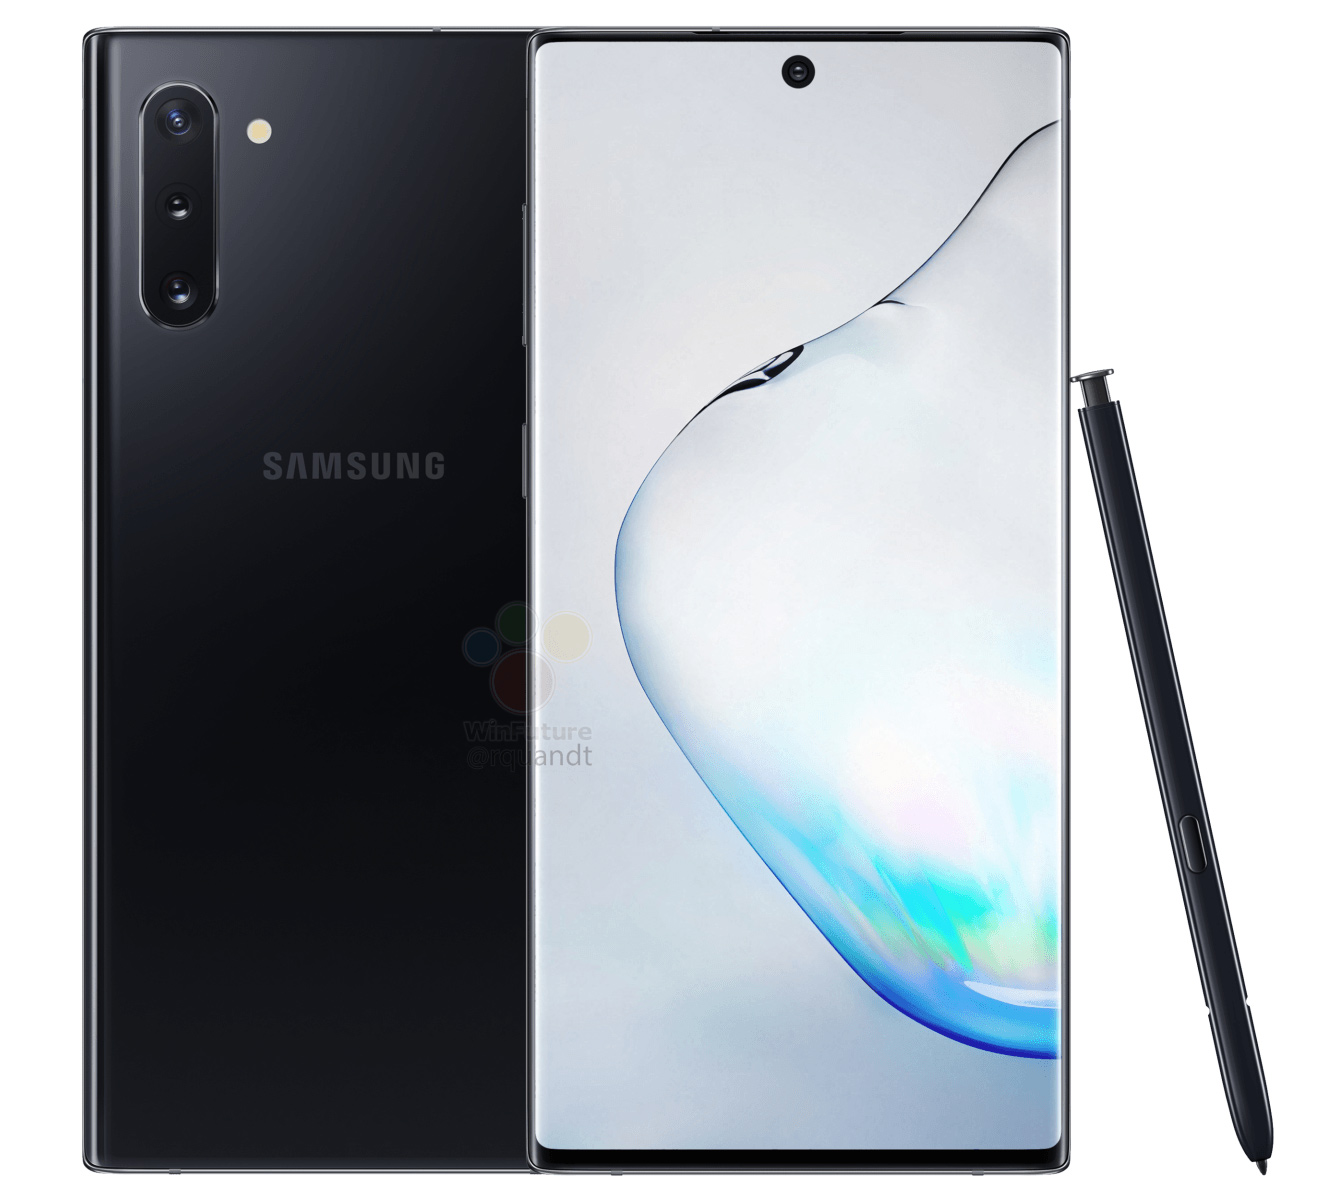 T-Mobile Galaxy Note 10 may get BOGO pre-order deal - TmoNews